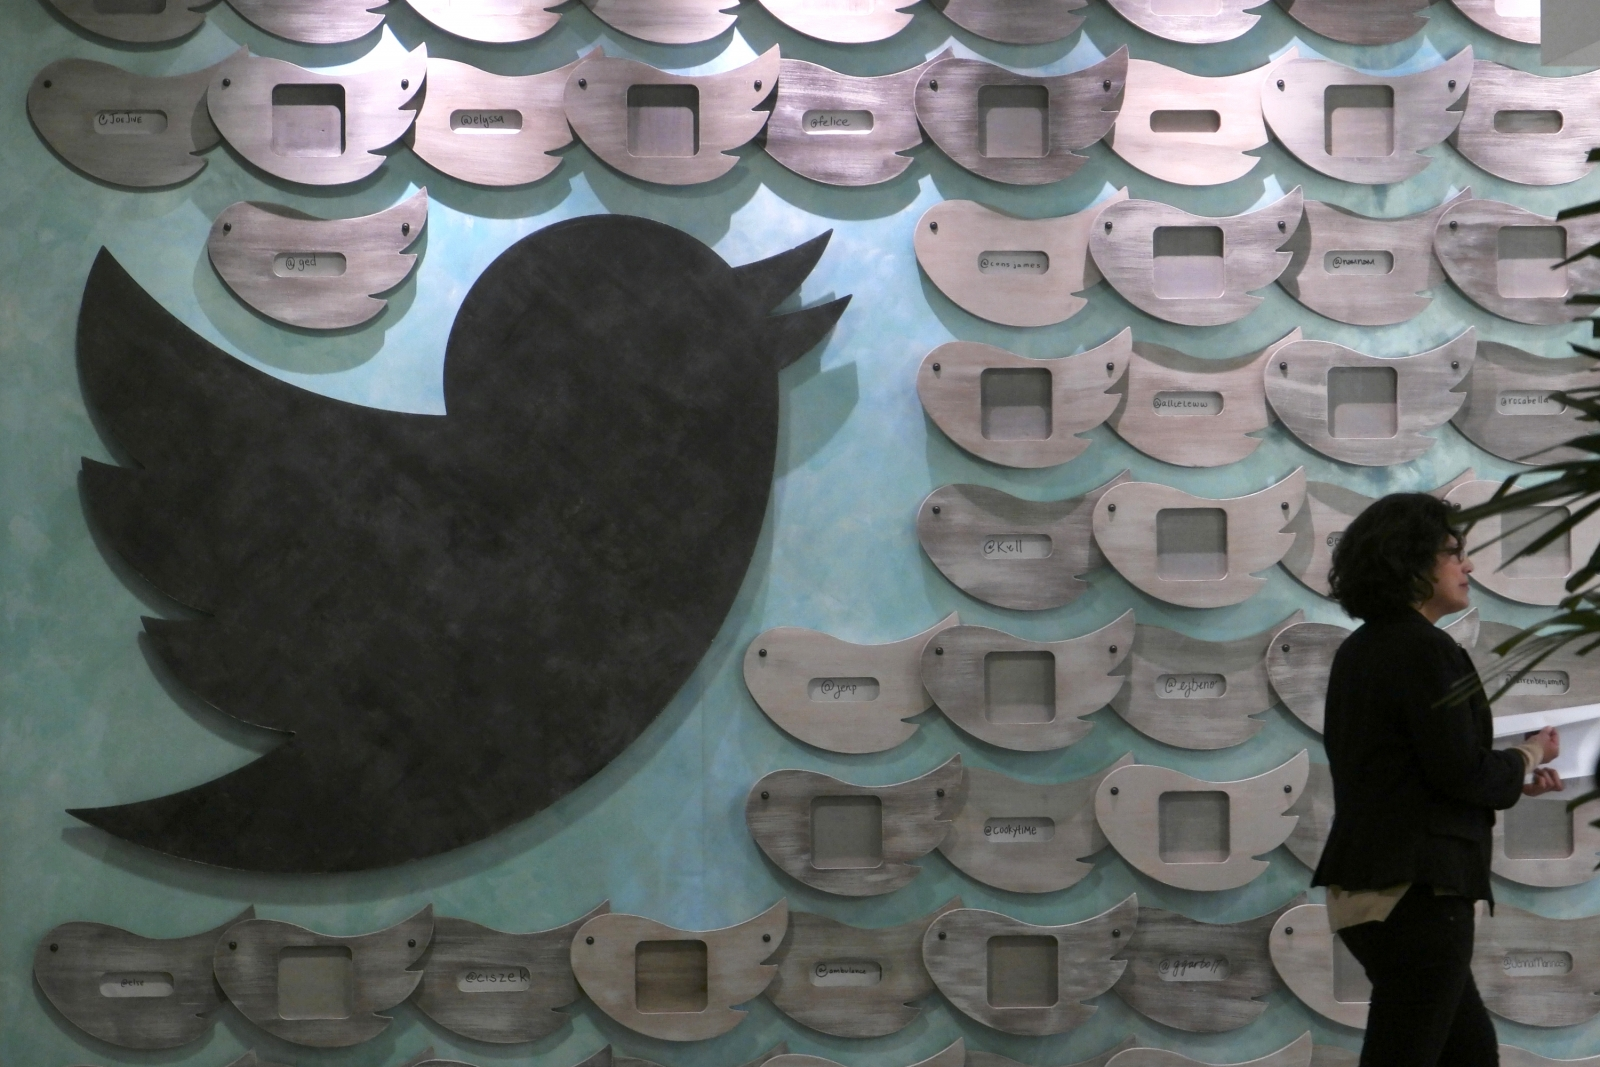 Twitter might cut 300 jobs